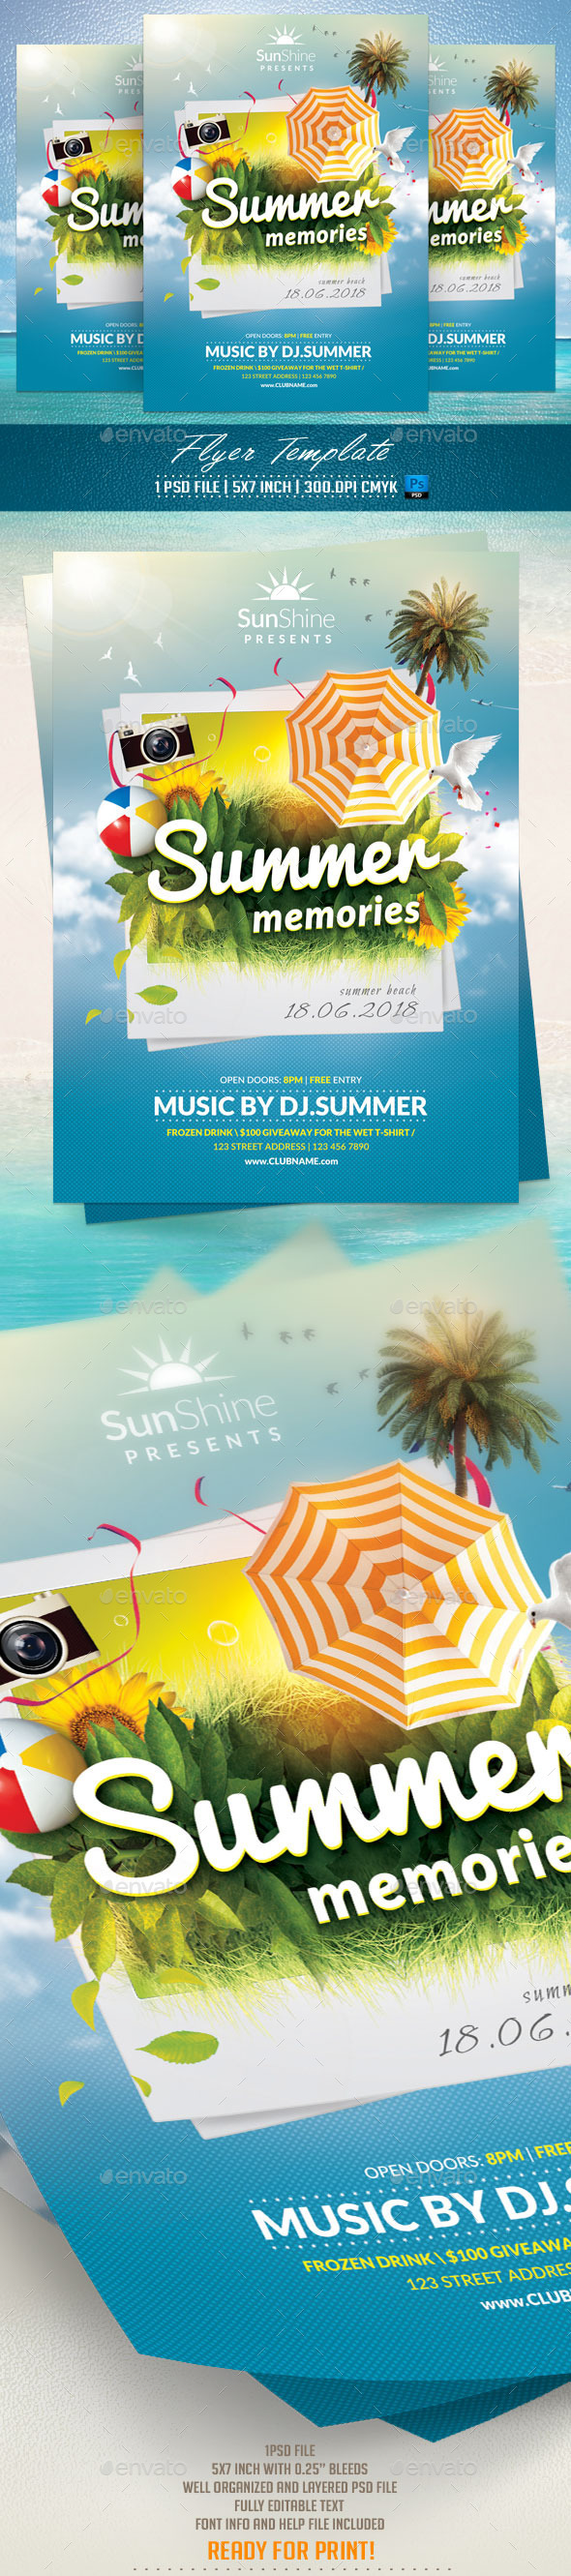 Summer Memories Flyer Template - Flyers Print Templates